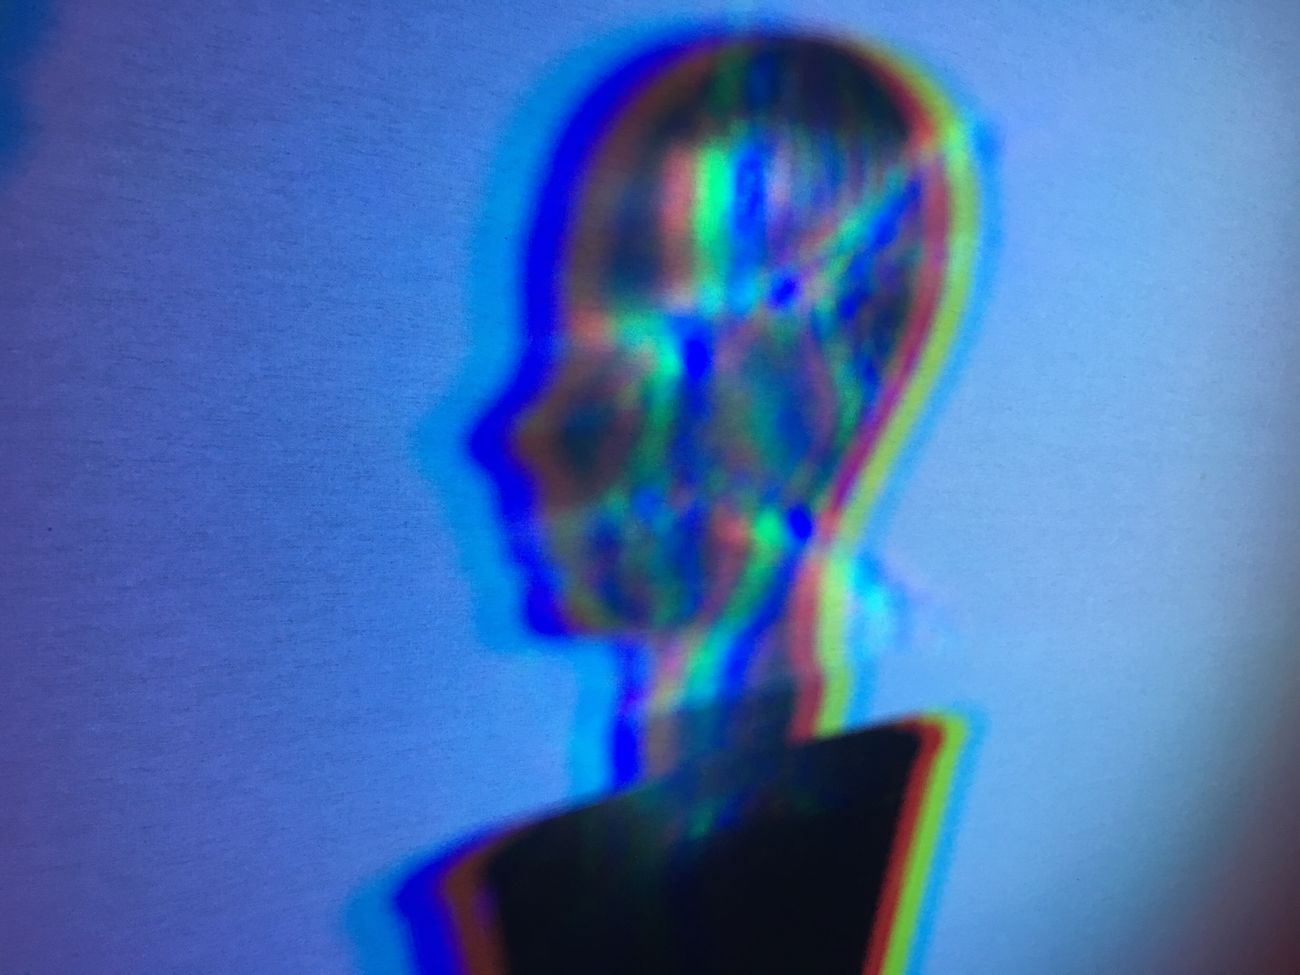 Blue One Person Close-up People Night Photography Night Lights Long Exposure RGB LED HEAD Bust  Person Statue Sculpture Illuminated Shadow Shadows & Lights Glowing CMYK Rainbow Prism Idea Creativity Thinking Robot